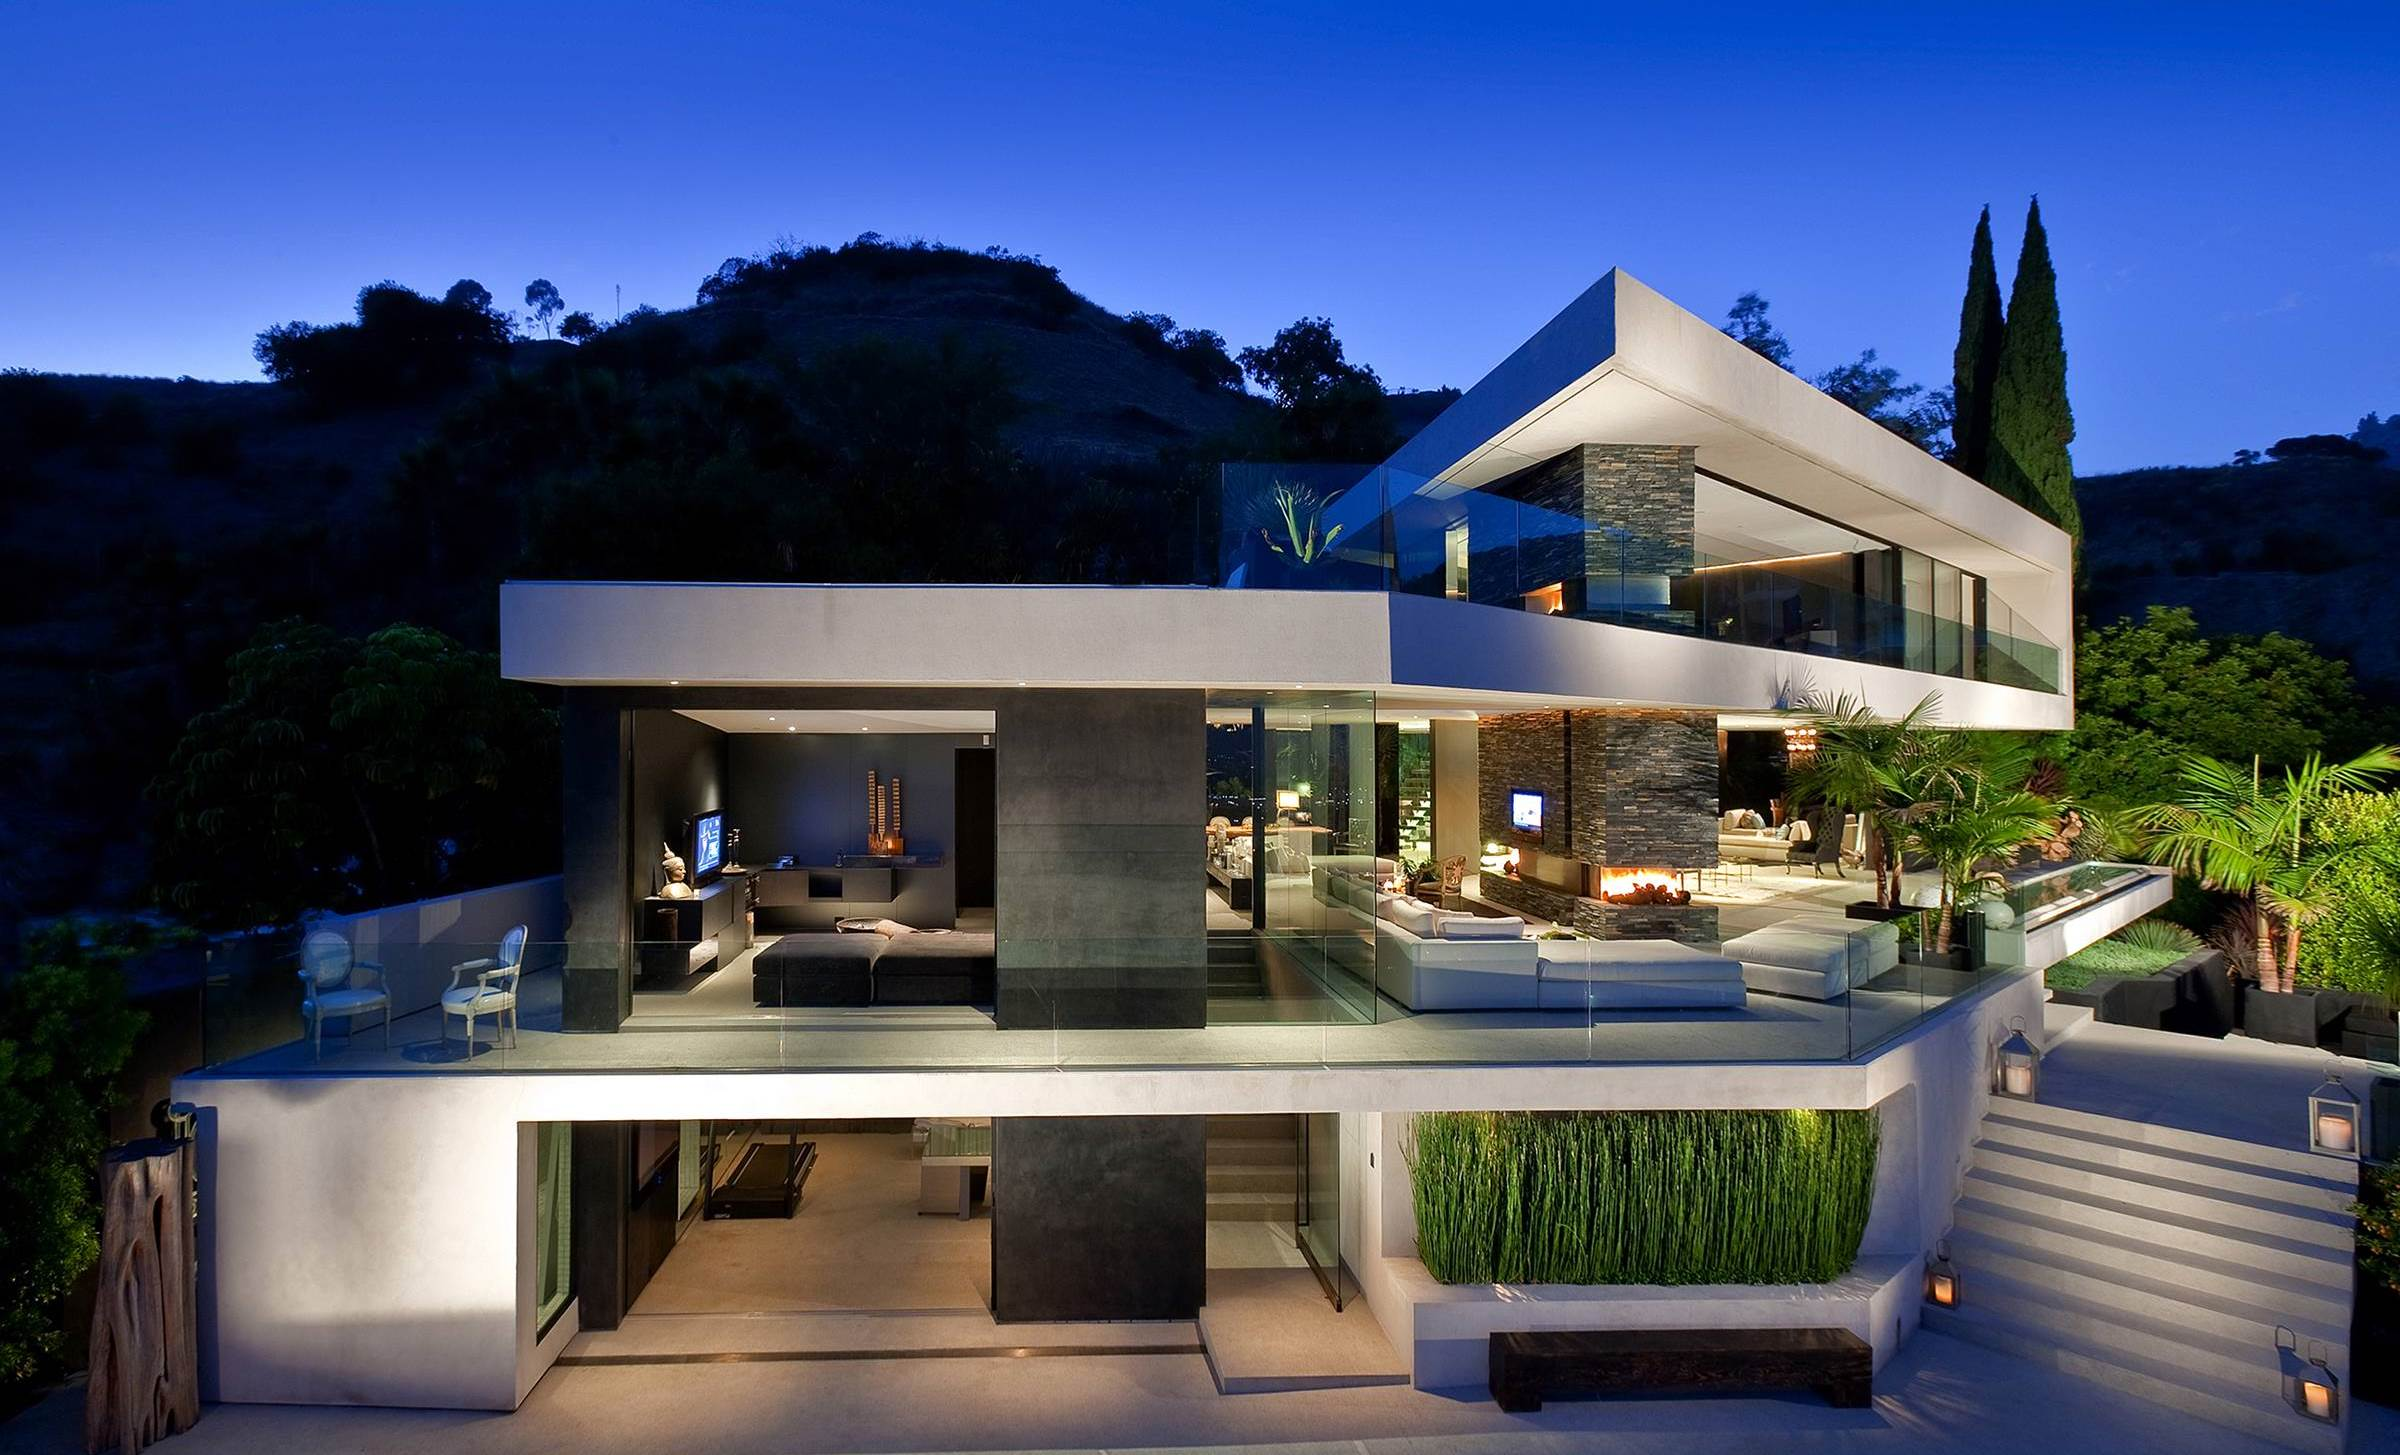 Fabulous Hollywood Hills Modern Home in Los Angeles by XTEN Architecture, luxury houses